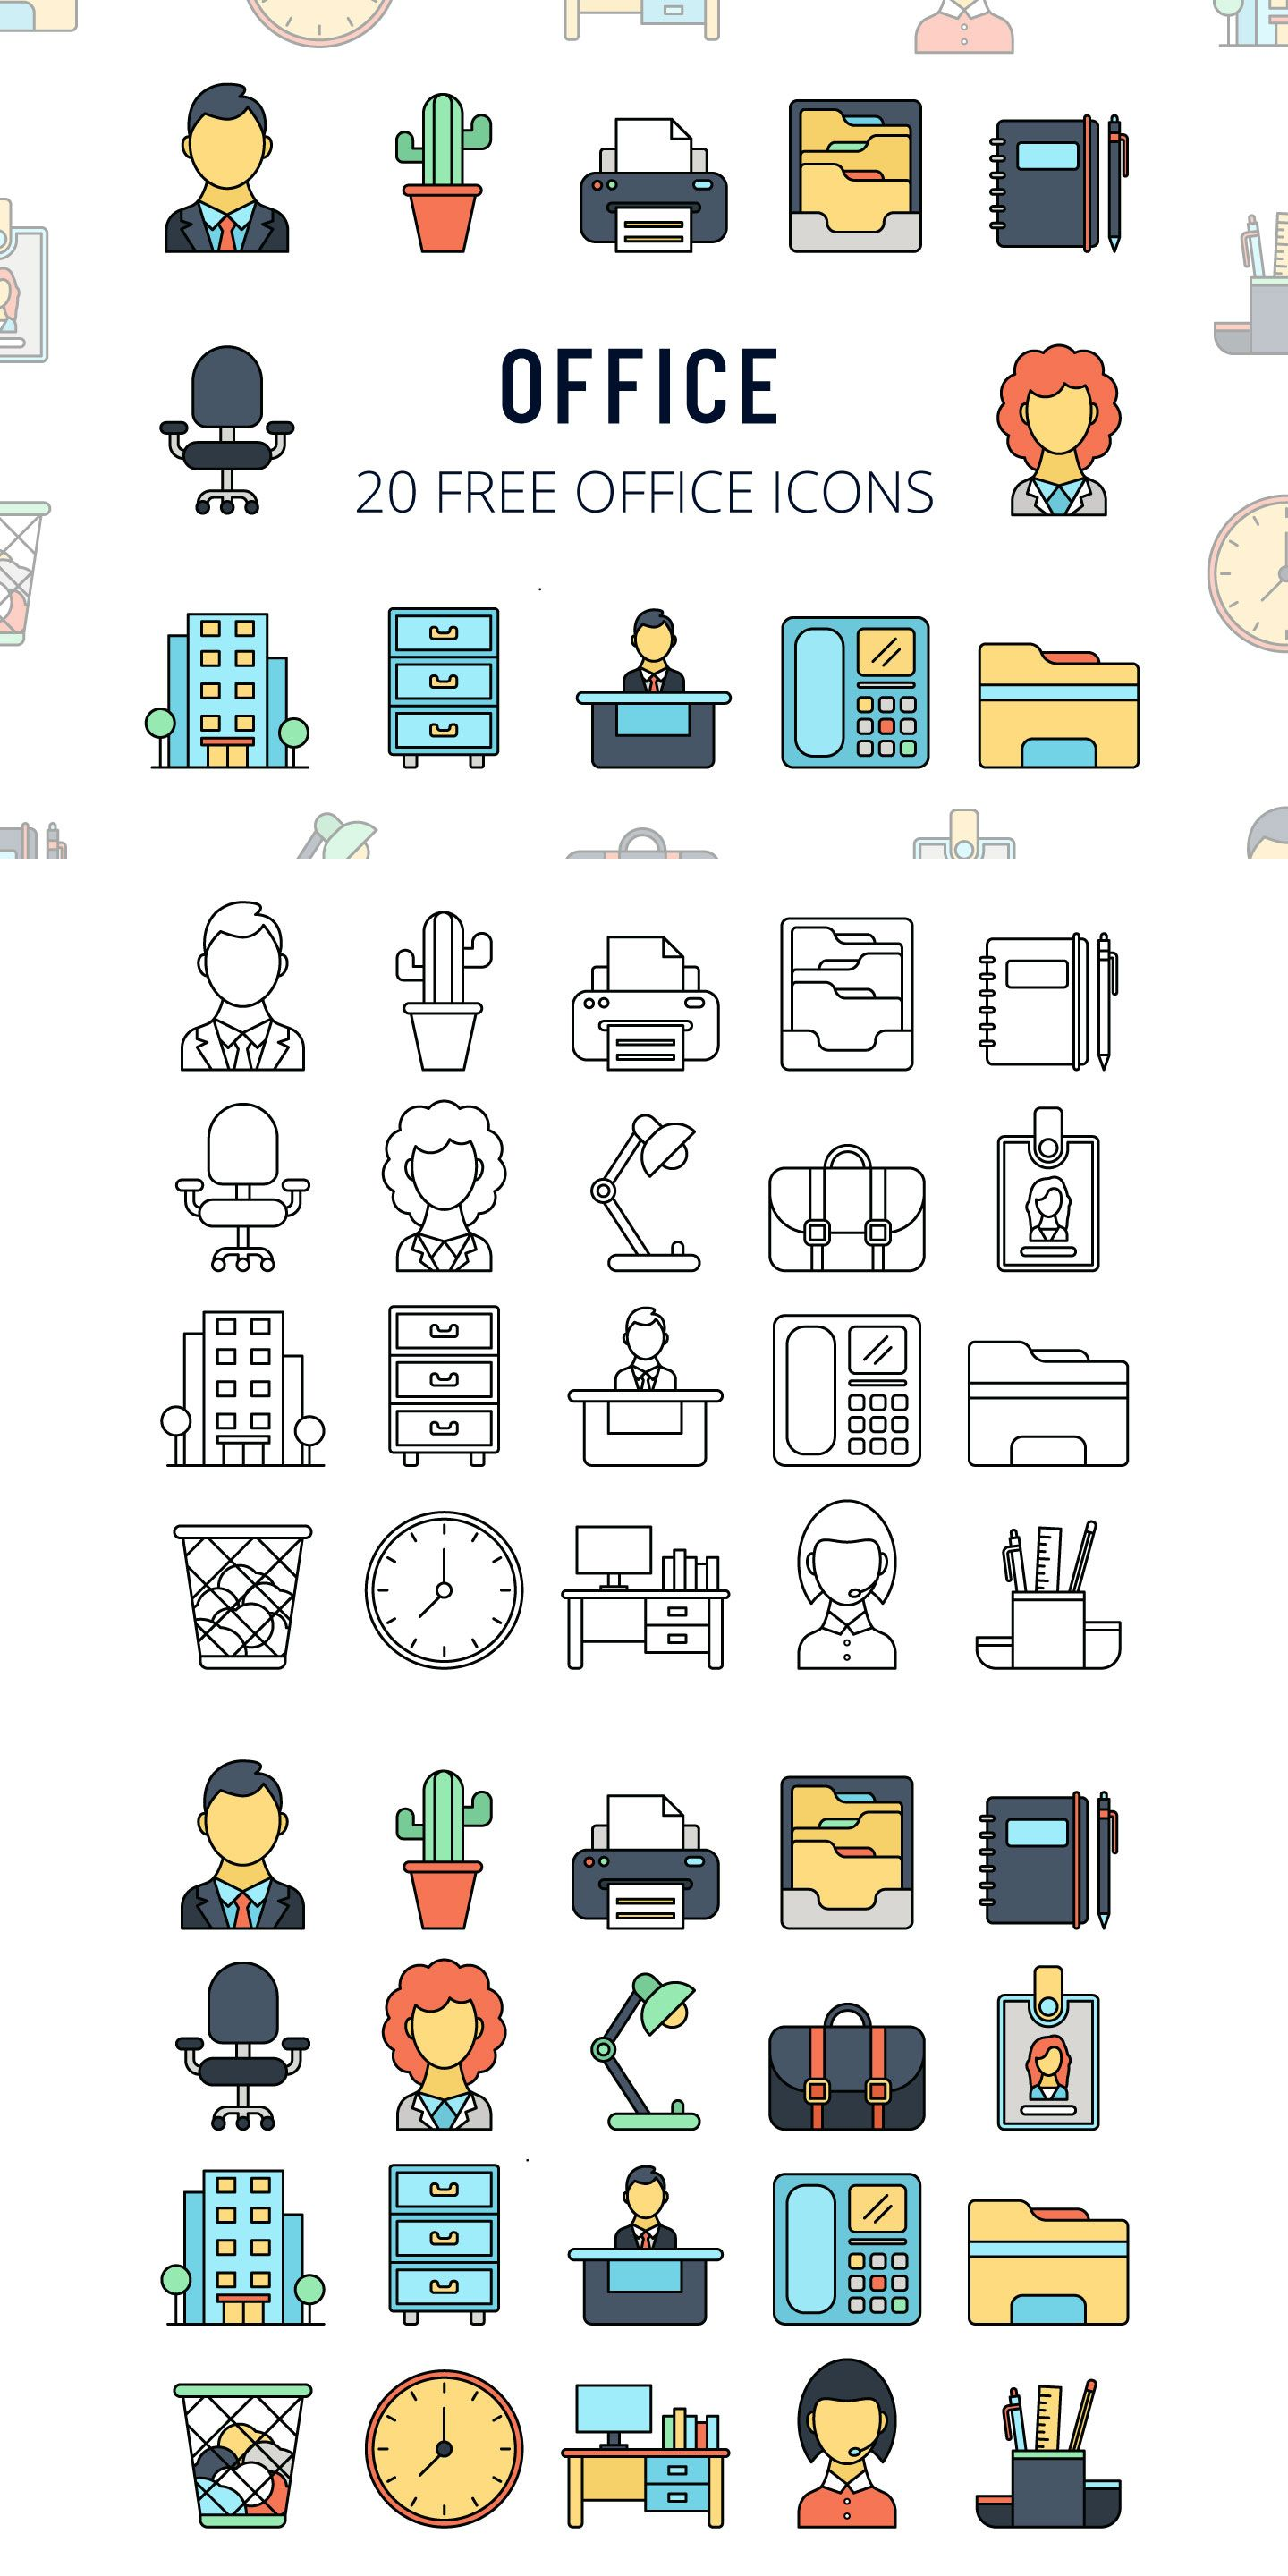 Office Vector Free Icon Set Icon set, Office icon